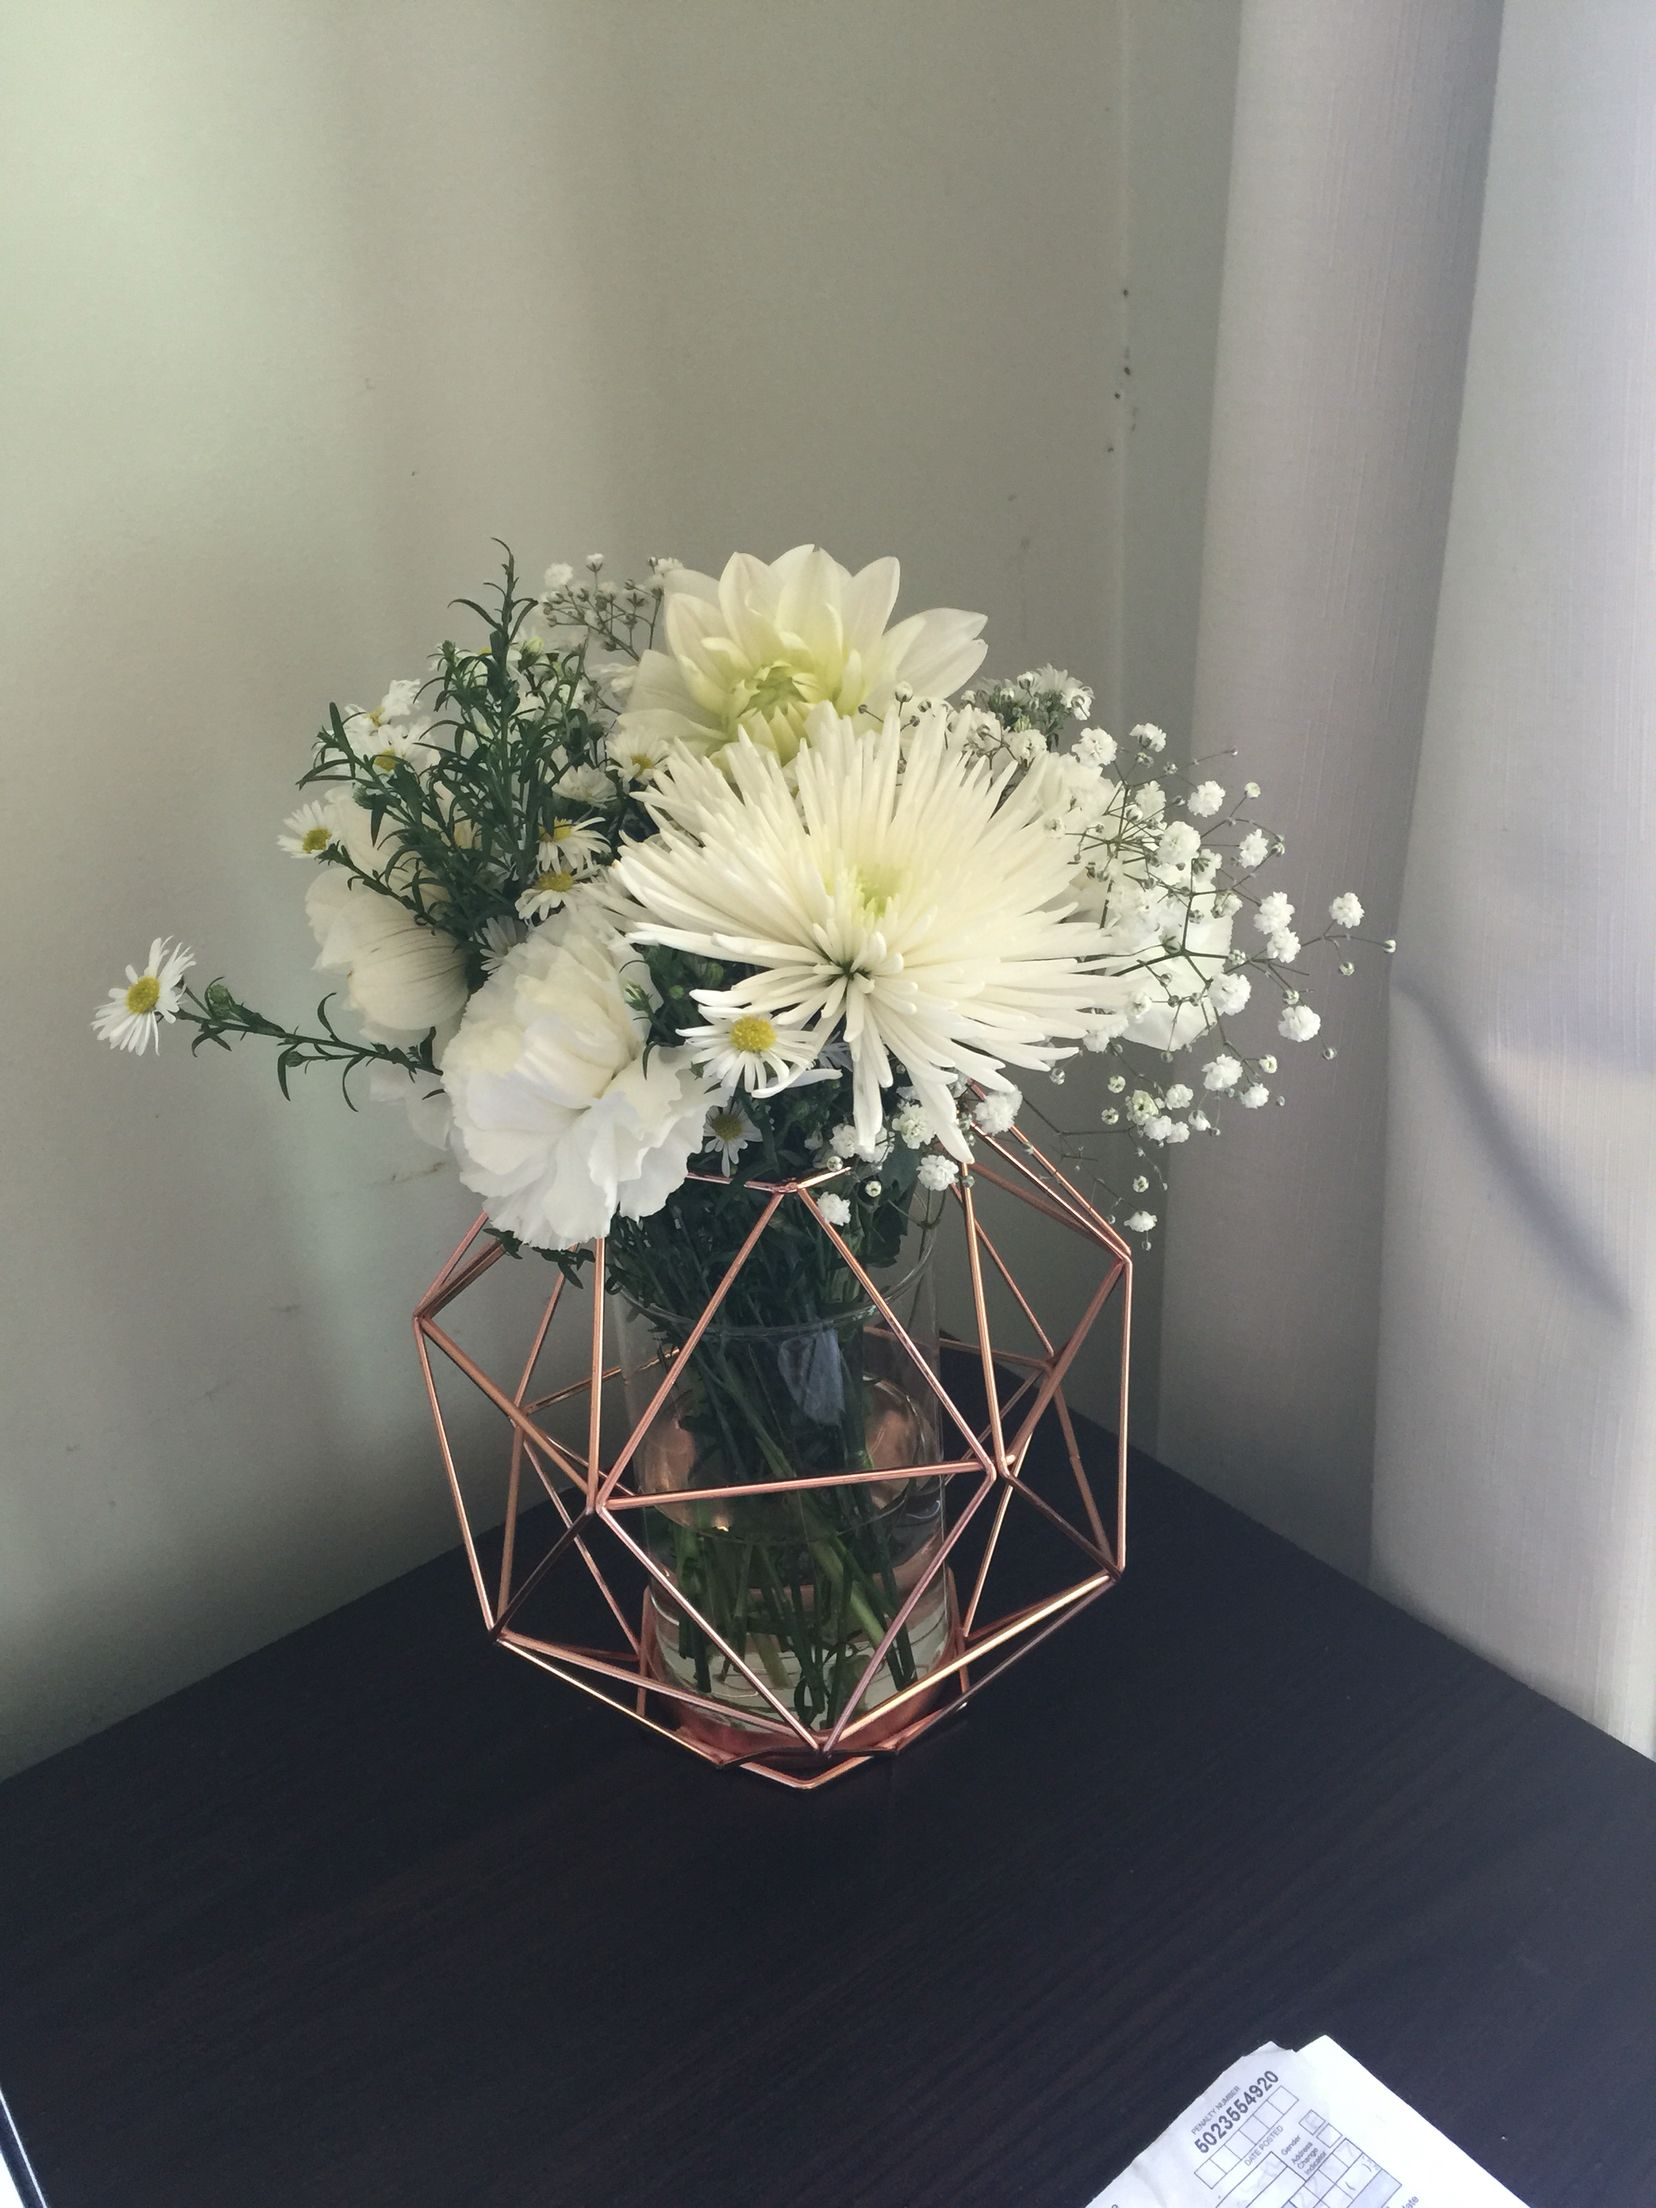 Copper Geometric Candle Holder From Kmart Used As A Vase